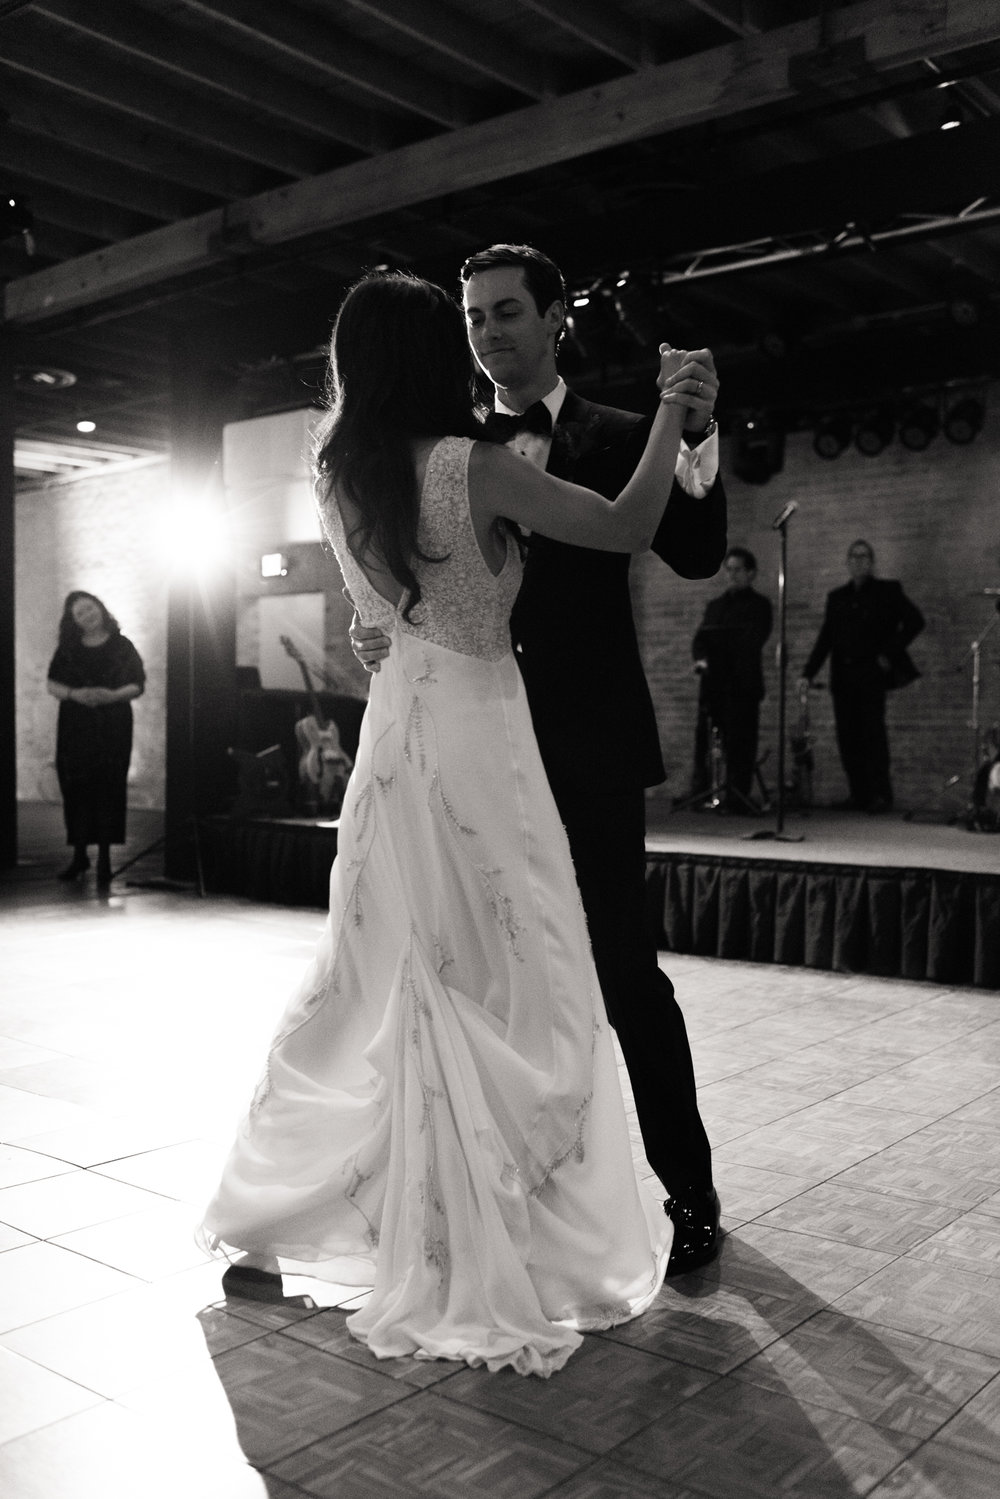 austin.wedding.bbp (95 of 125).jpg